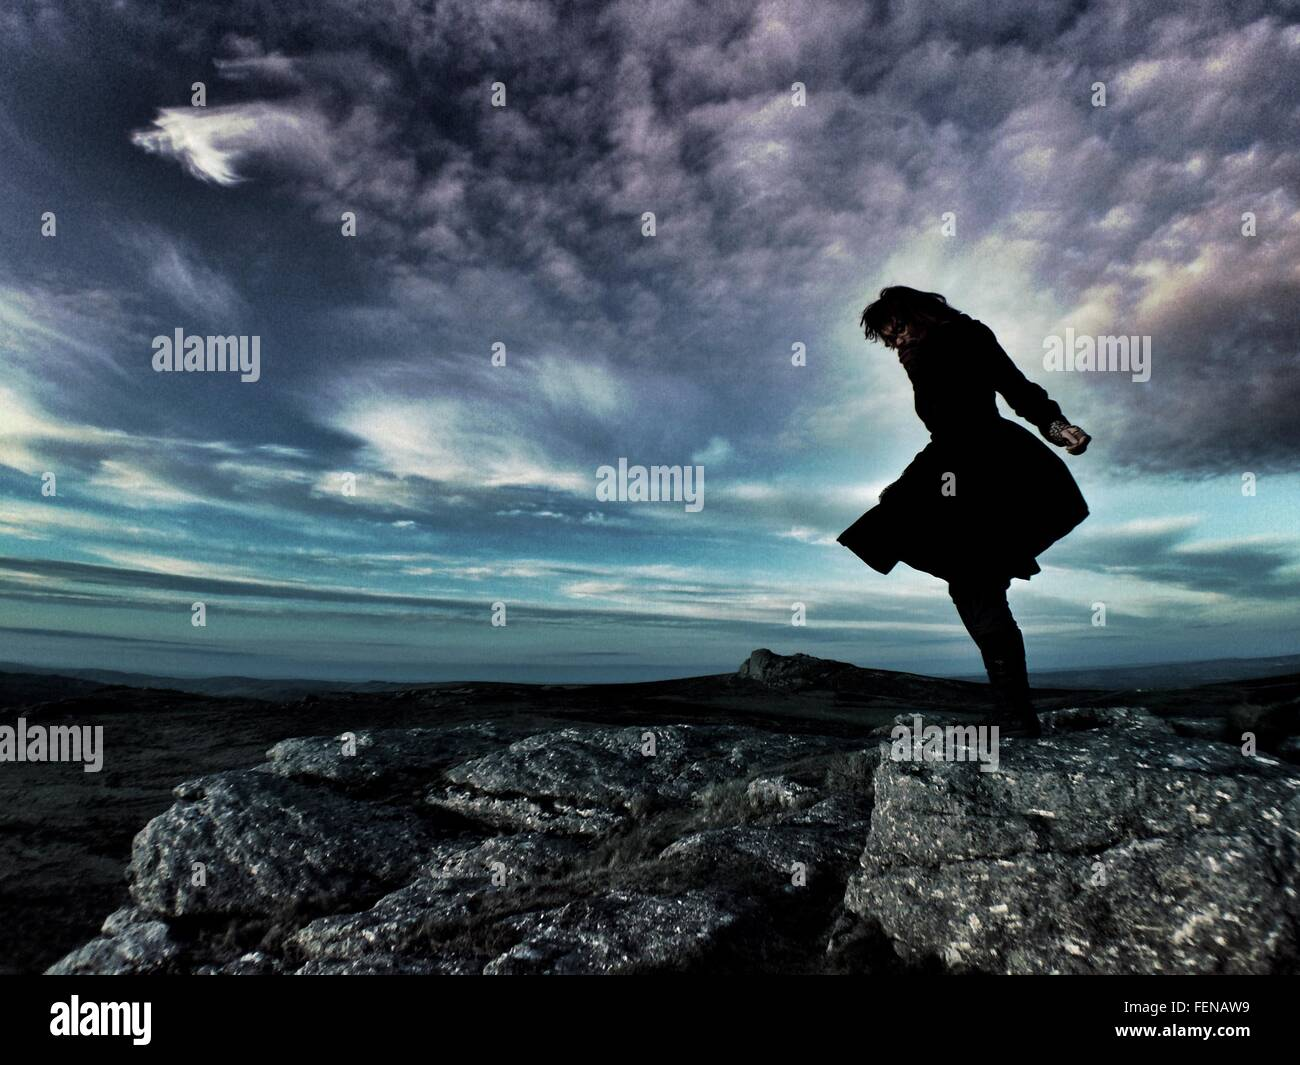 Silhouette Woman Standing On Rock Against Cloudy Sky - Stock Image